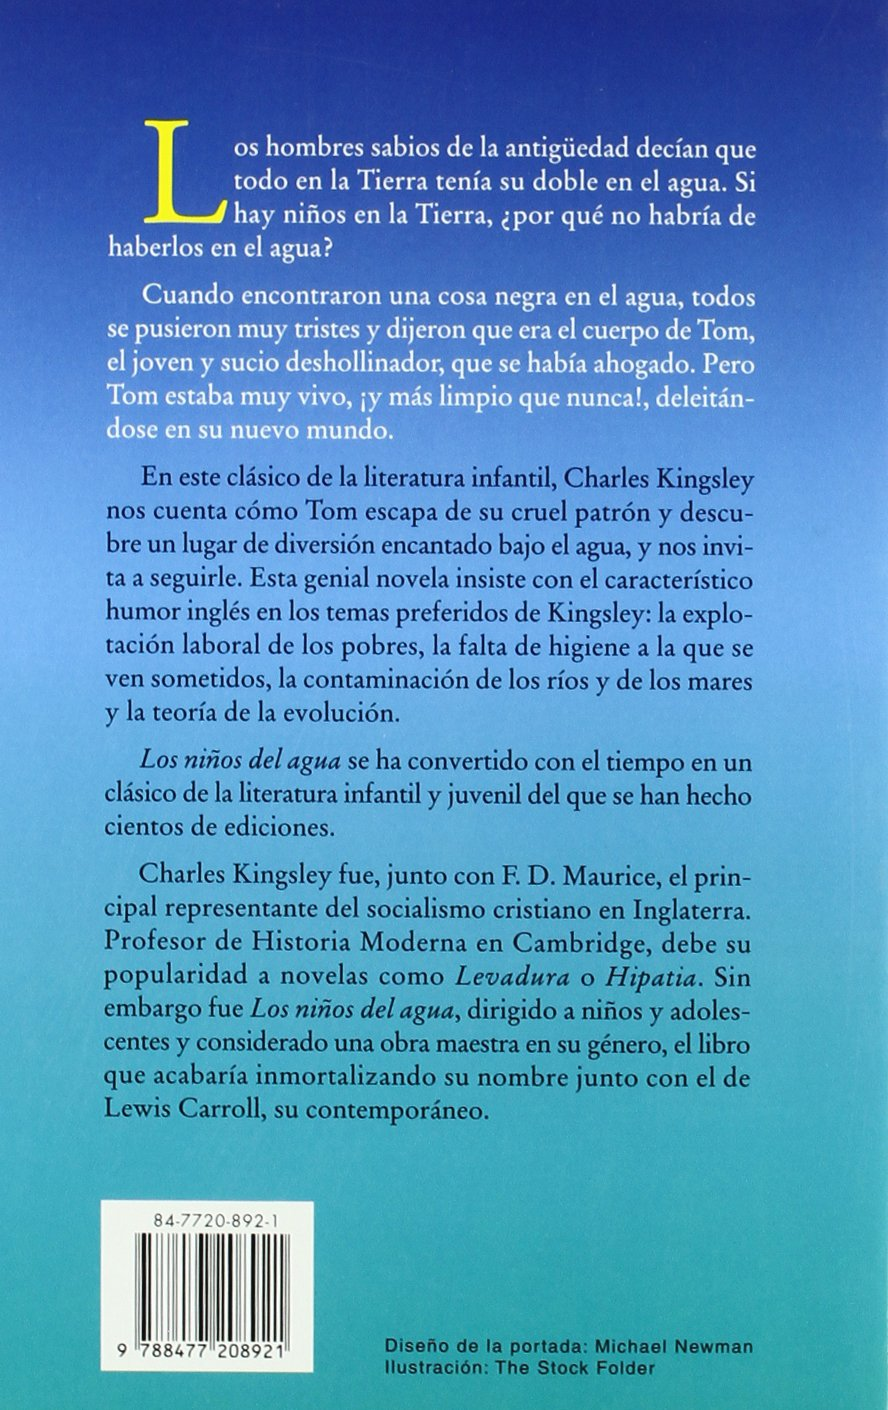 Los Ninos del Agua / The Water-Babies (Spanish Edition): Charles Kingsley: 9788477208921: Amazon.com: Books